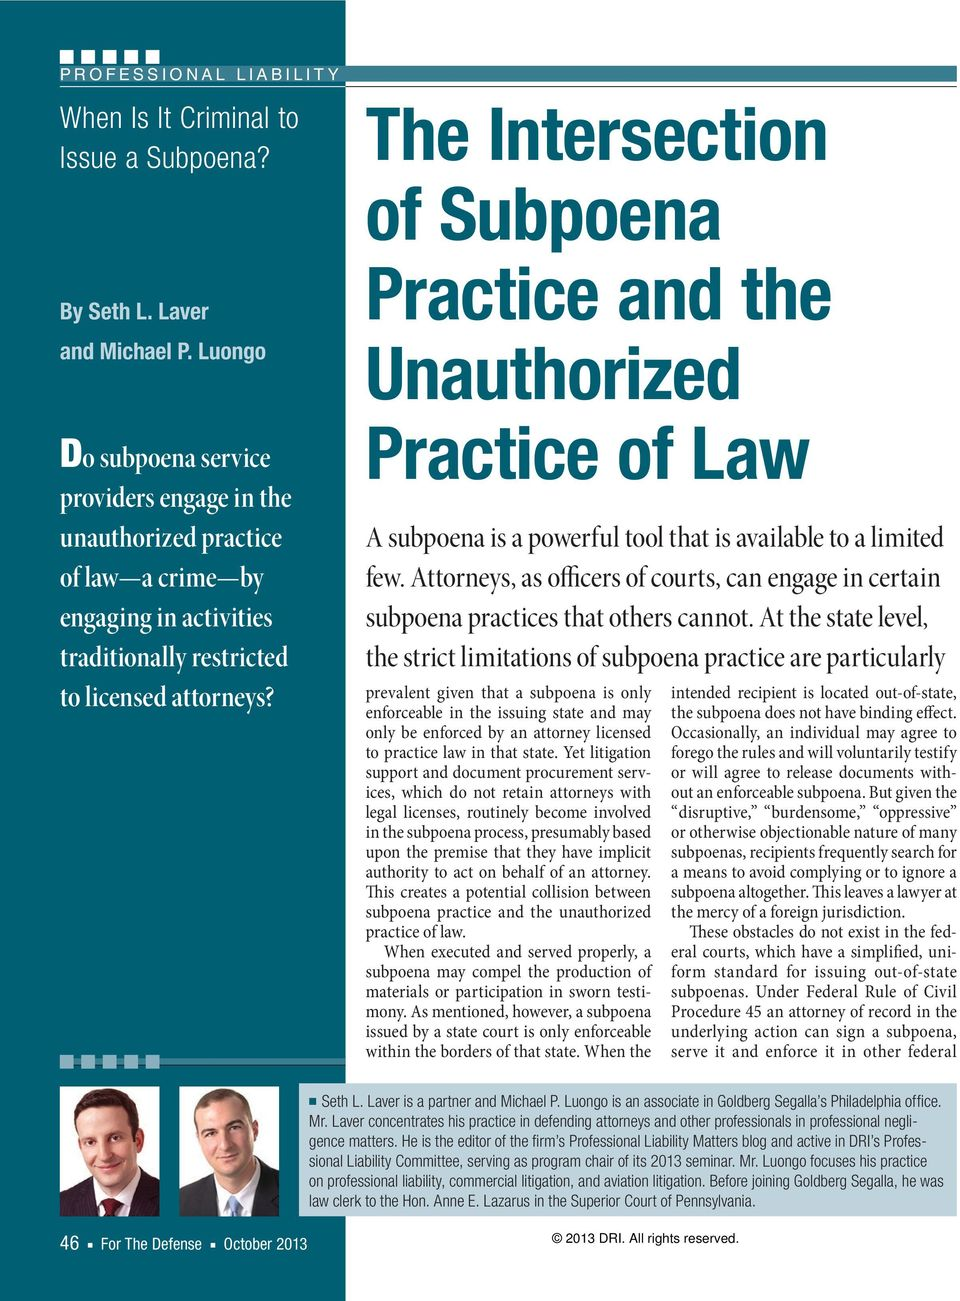 The Intersection of Subpoena Practice and the Unauthorized Practice of Law A subpoena is a powerful tool that is available to a limited few.